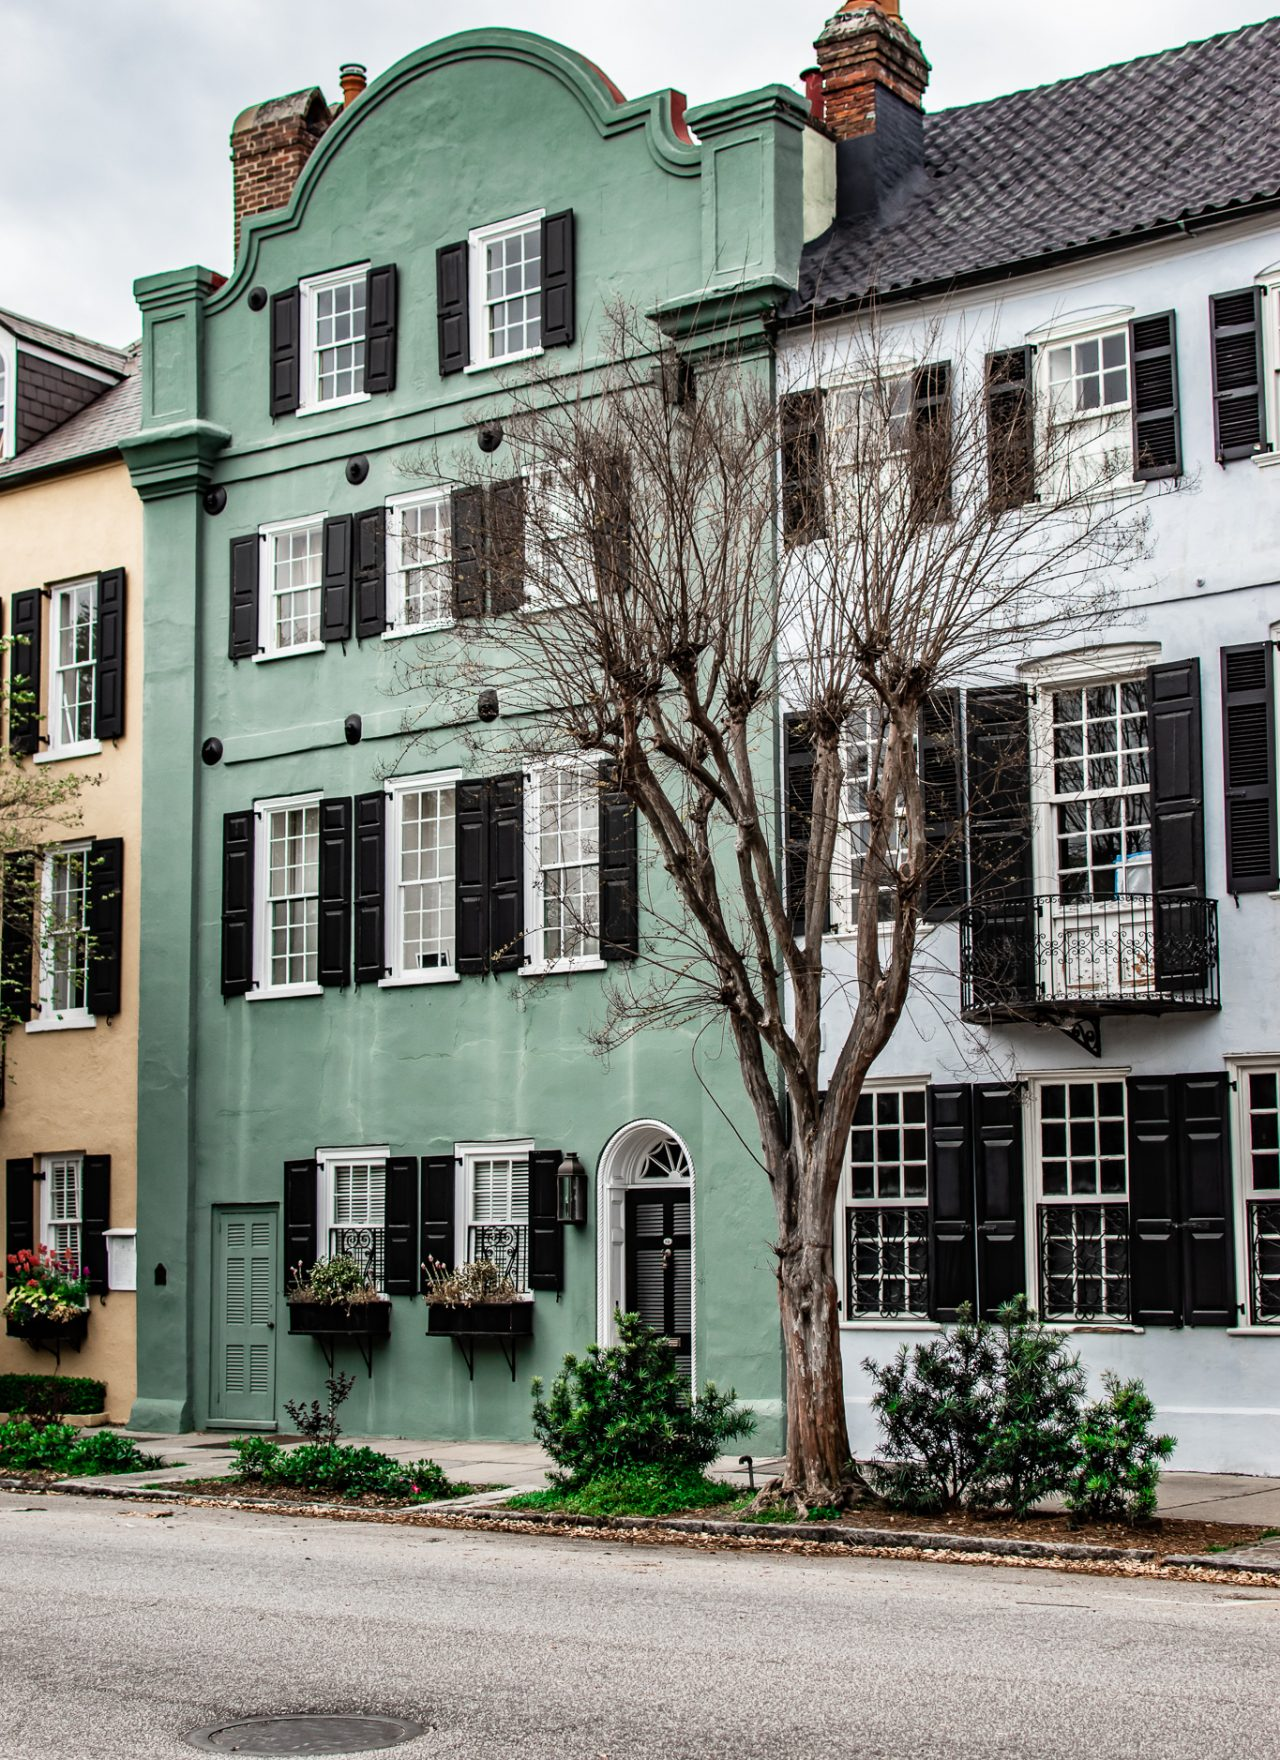 36 Hours in Charleston: Where To Stay, Eat, & Play